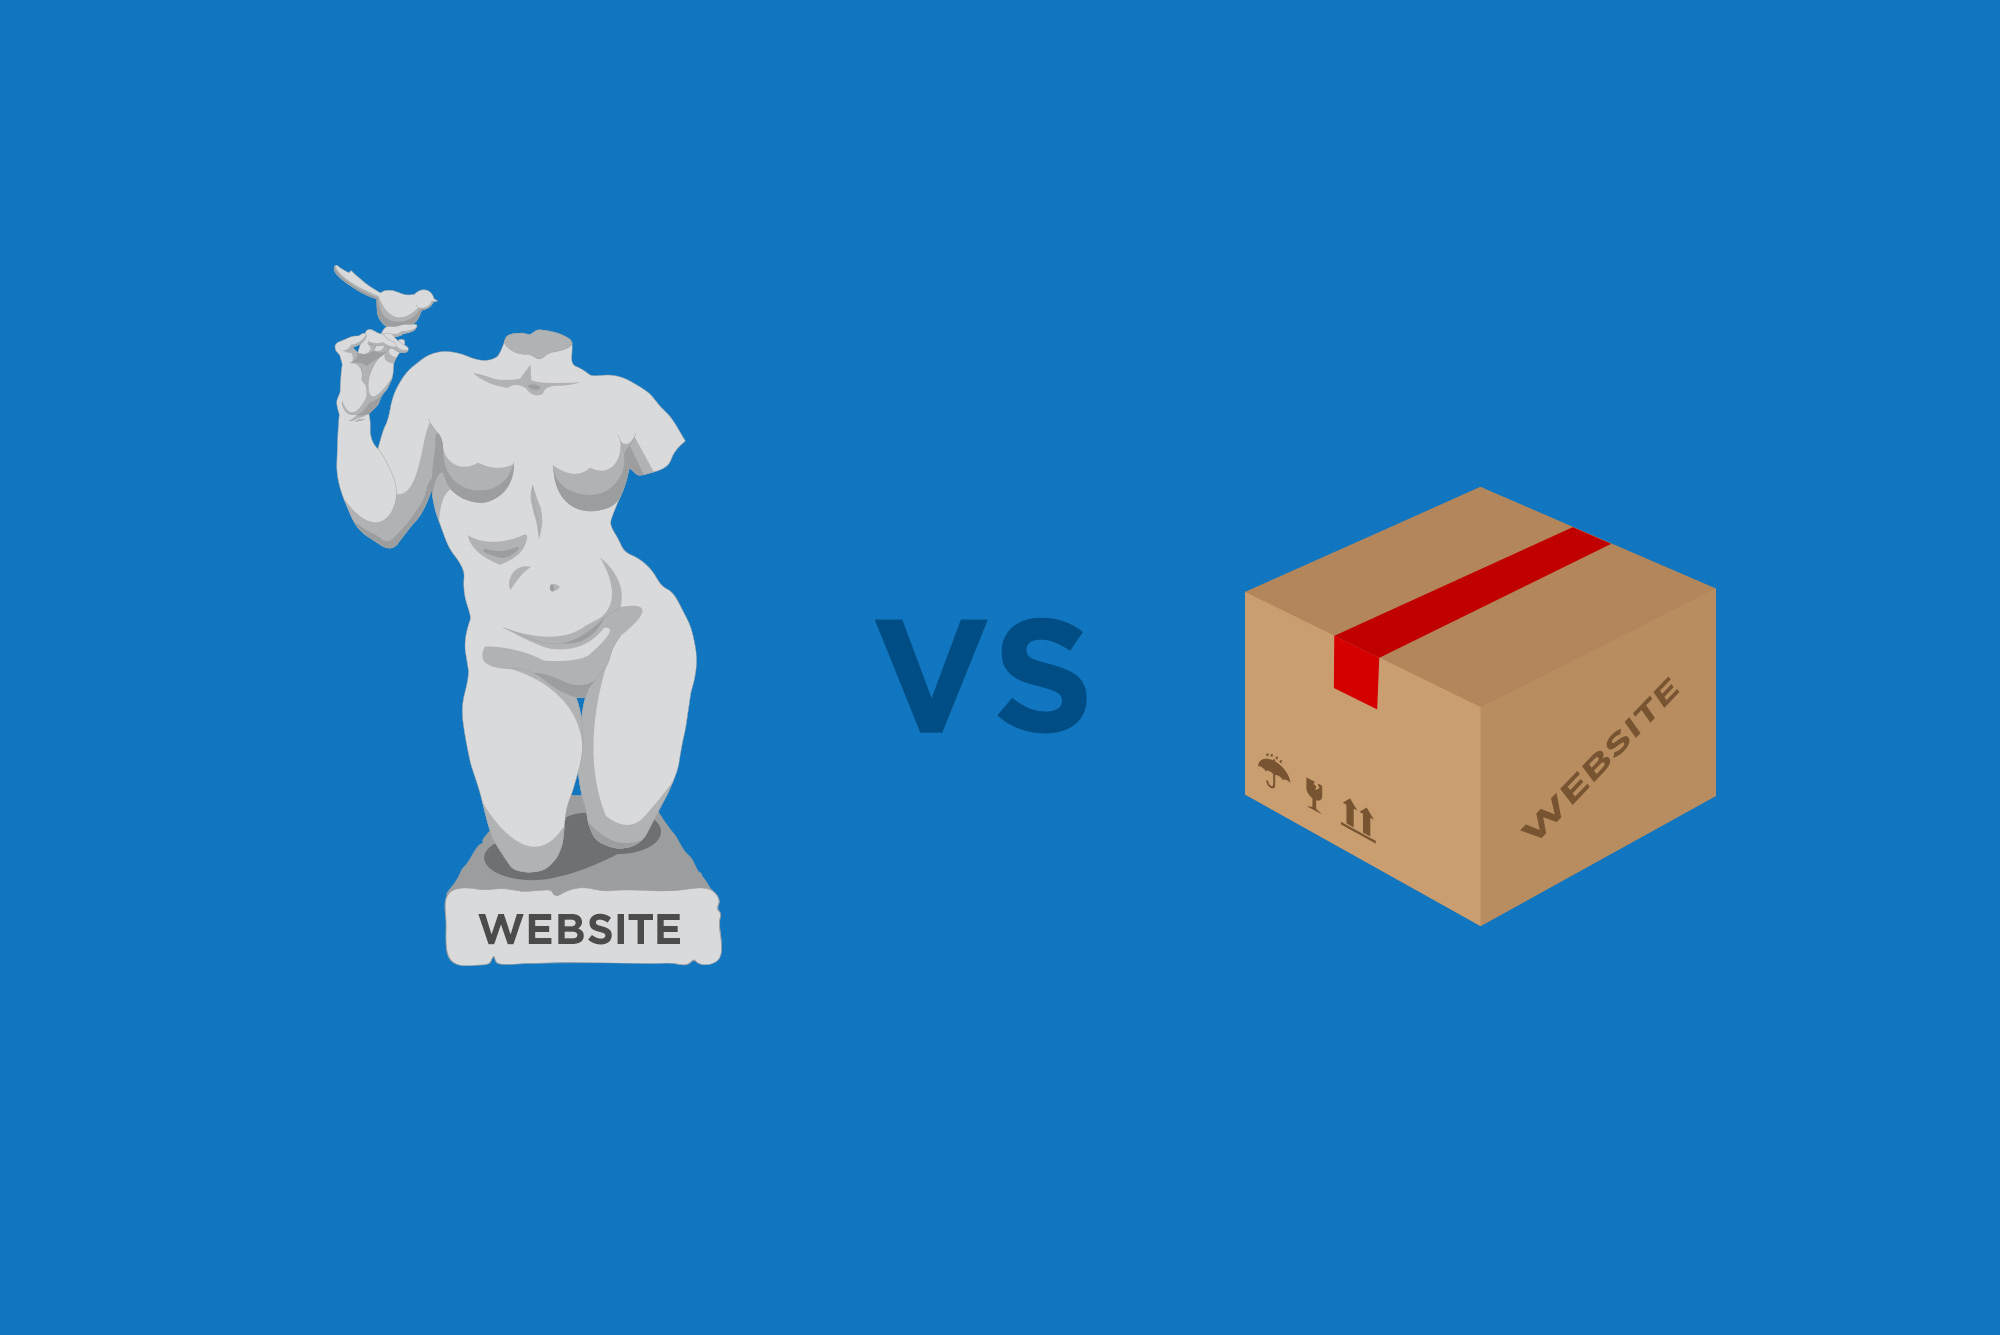 Website statue vs website box - custom vs templates